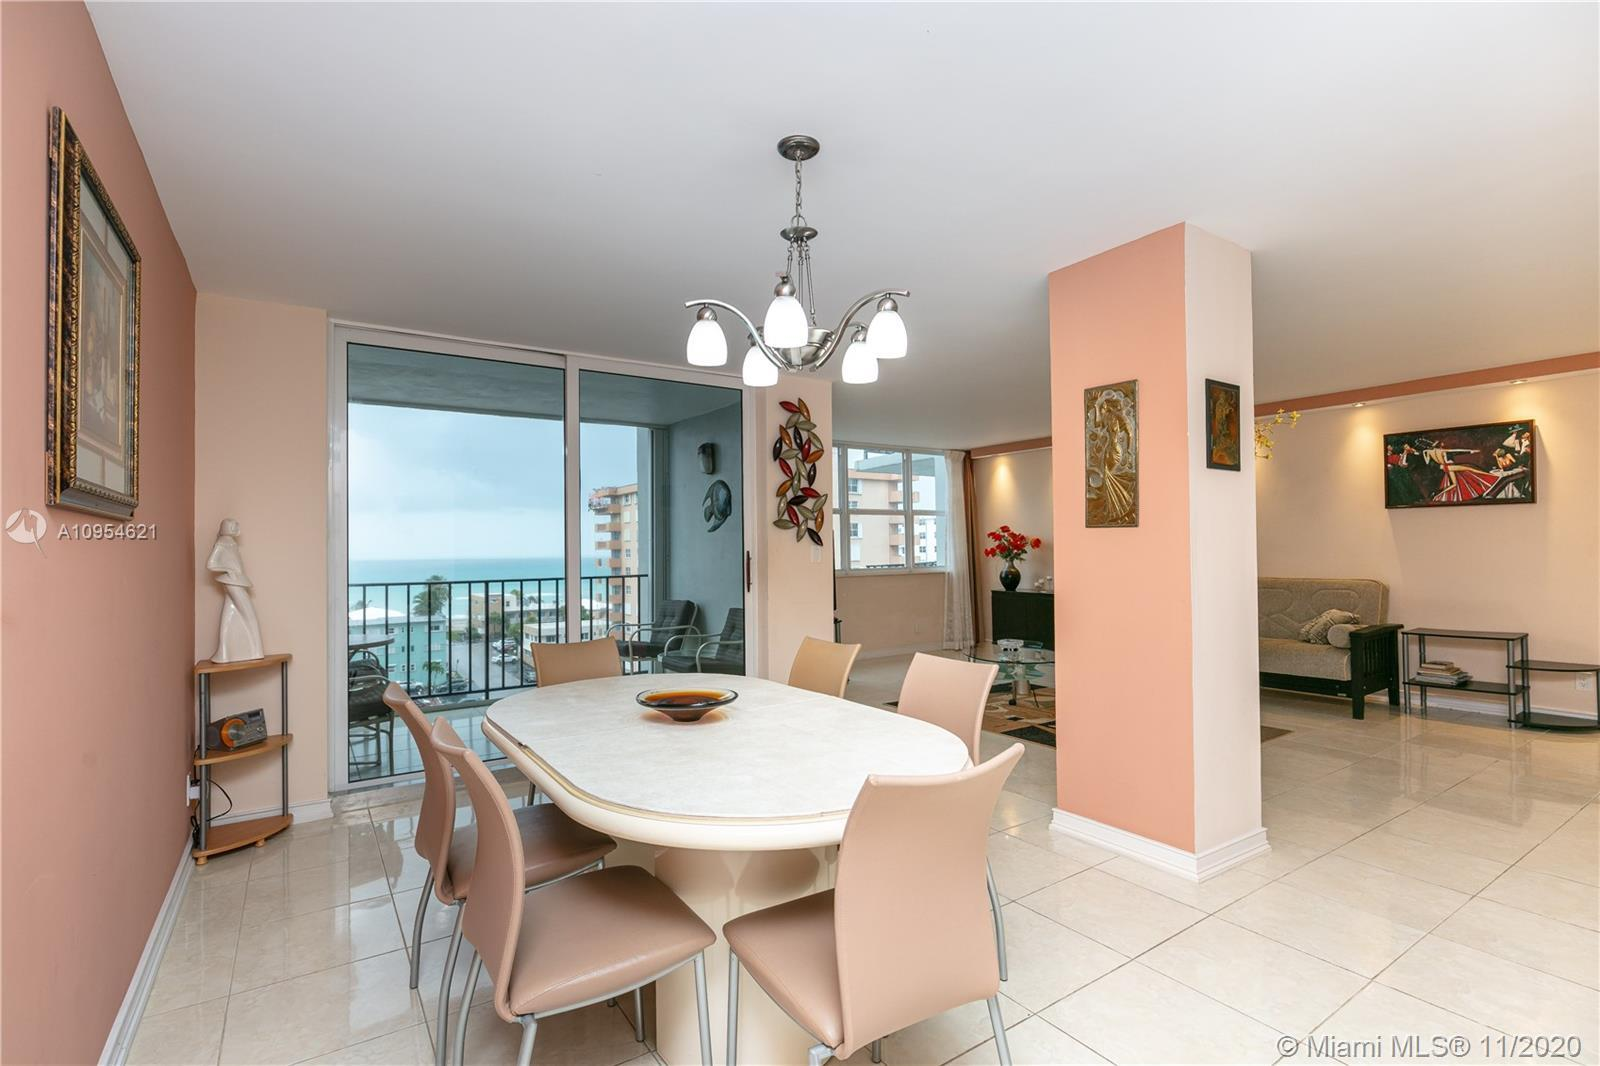 North-East exposure with the beautiful view of the Ocean and Intercoastal. Across the street from th